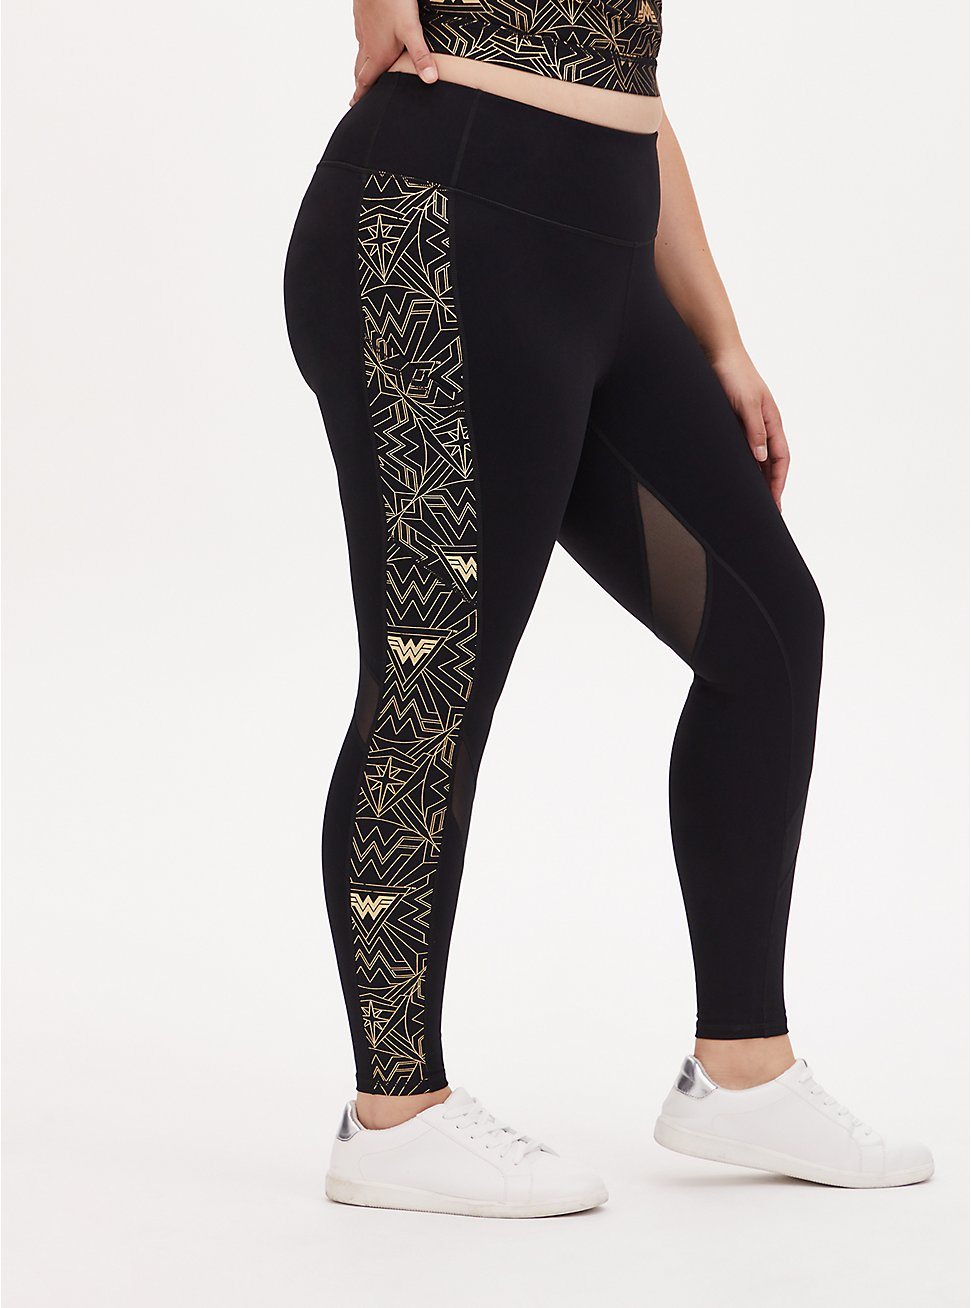 Wonder Woman 84 Logo Gold & Black Crop Active Legging with Pockets, DEEP BLACK, hi-res